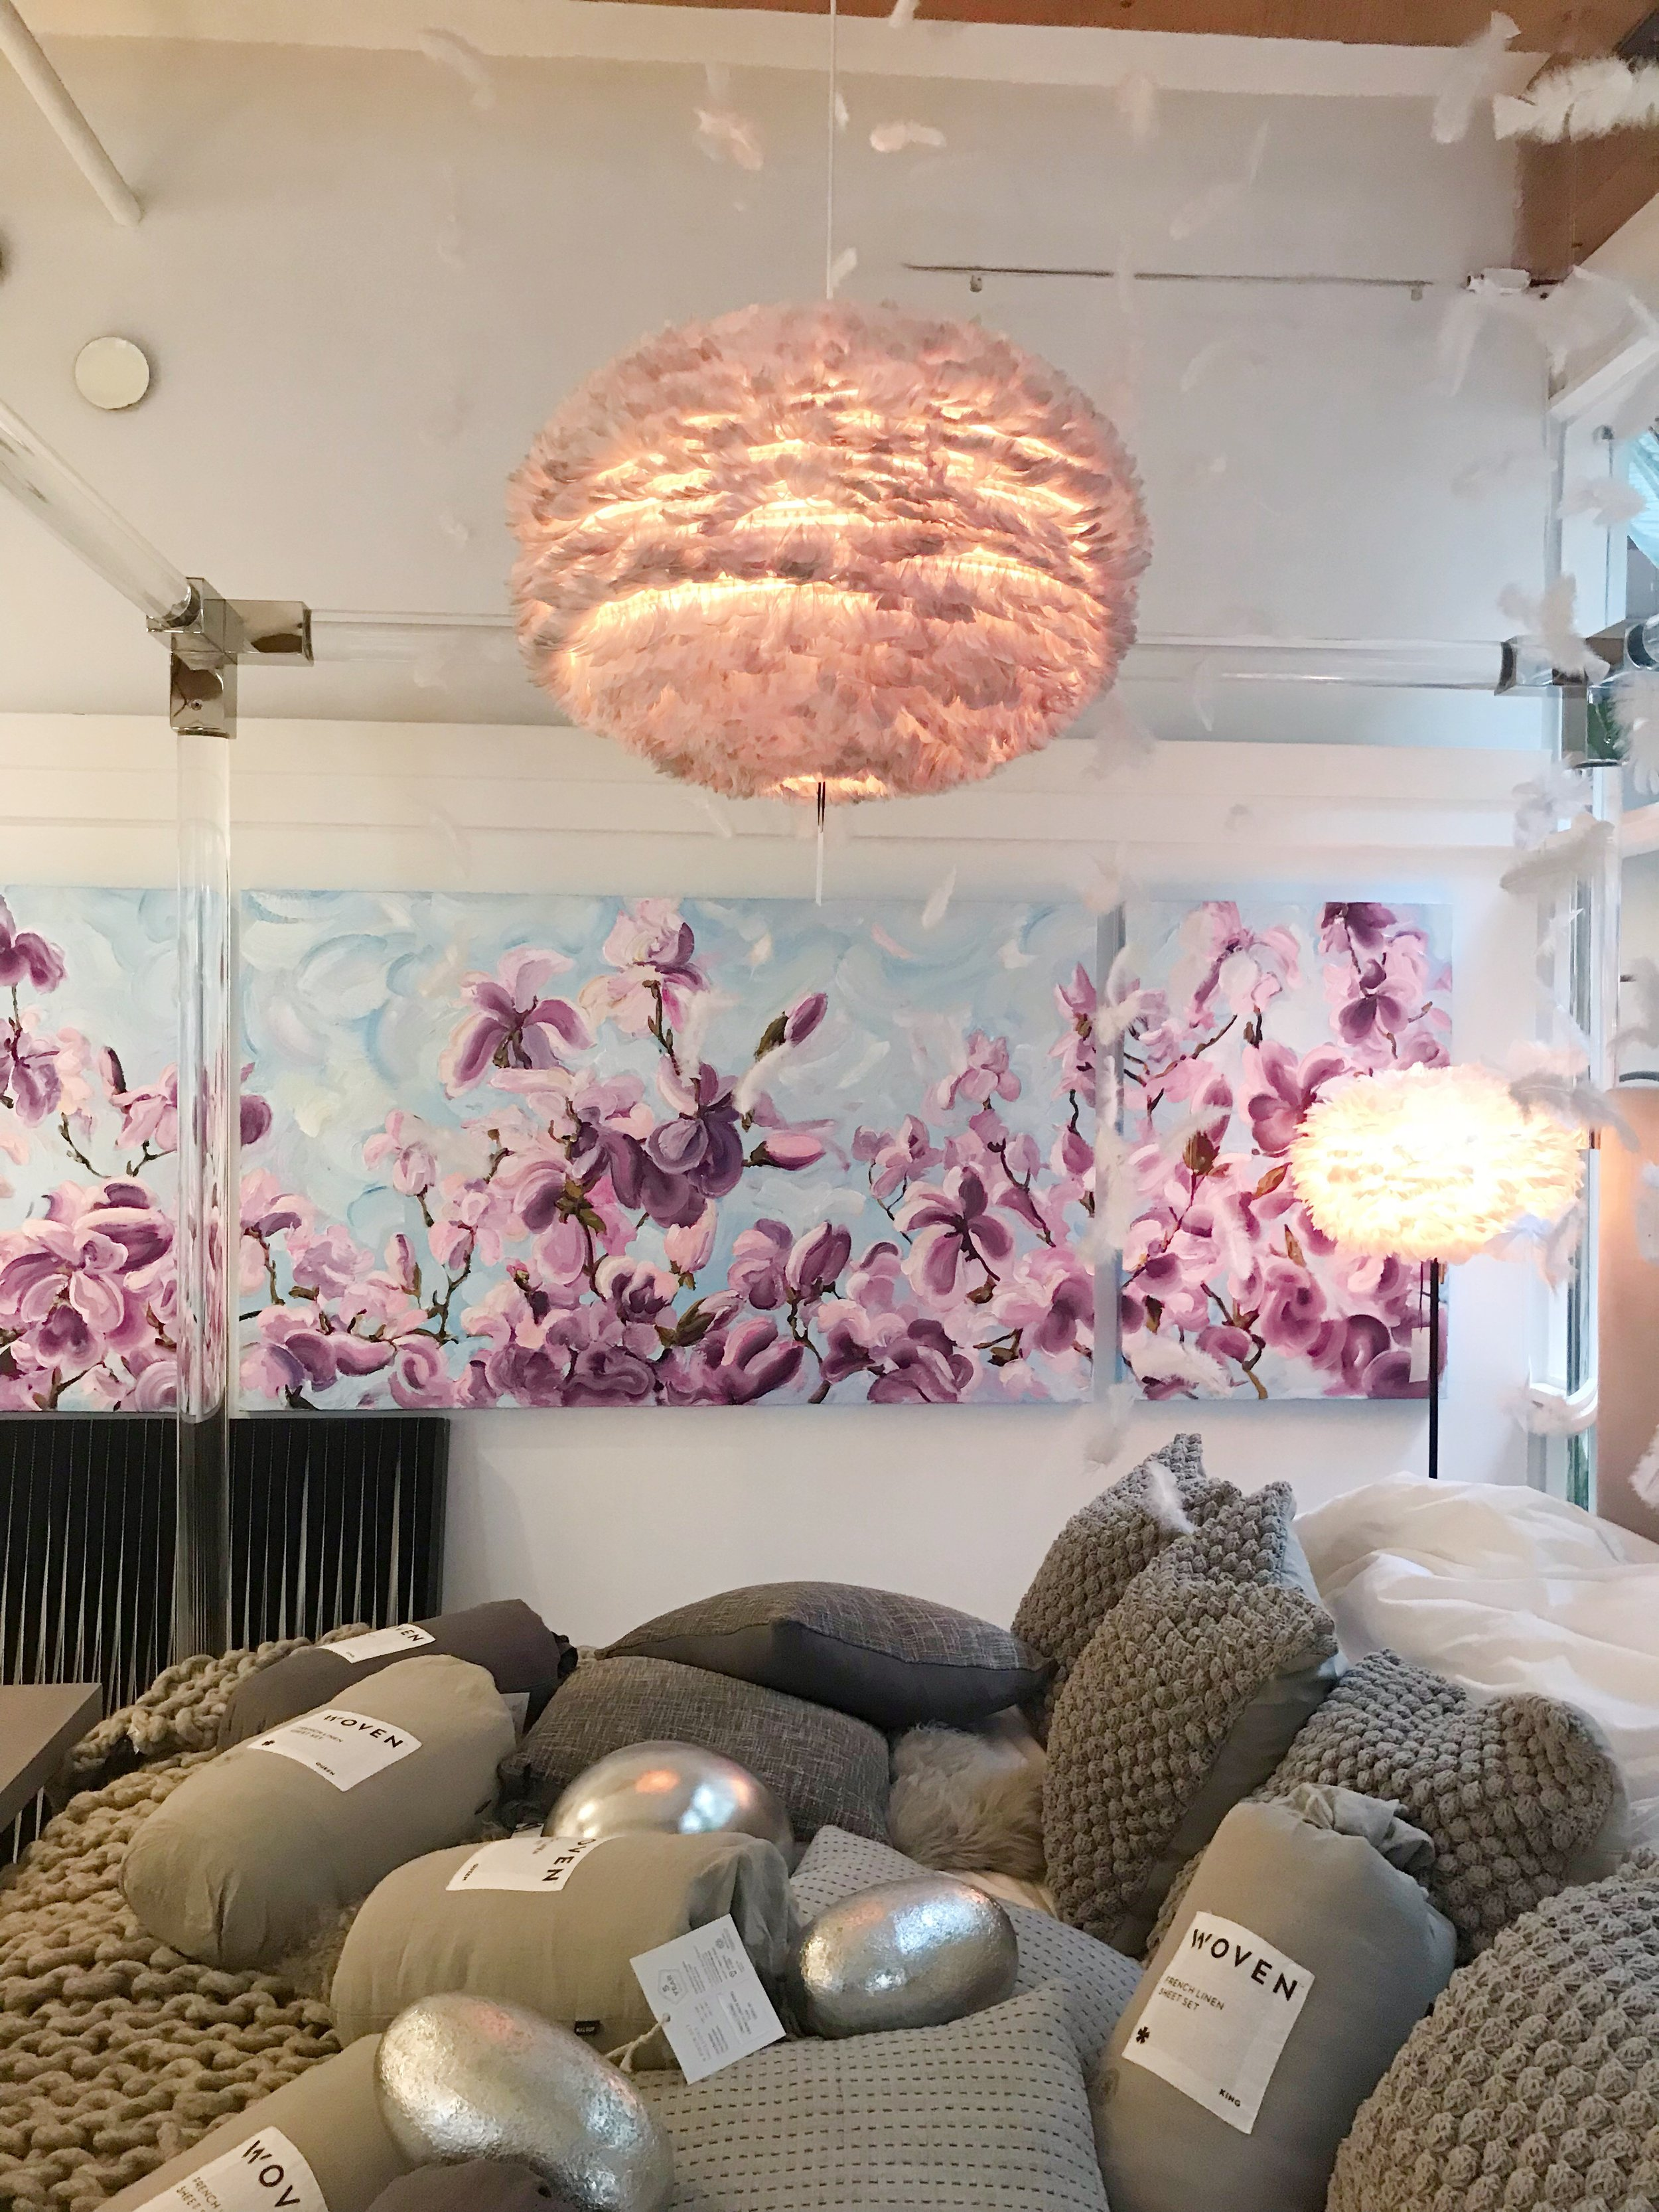 A Dream of Spring, installed at Dwell Living, Vancouver